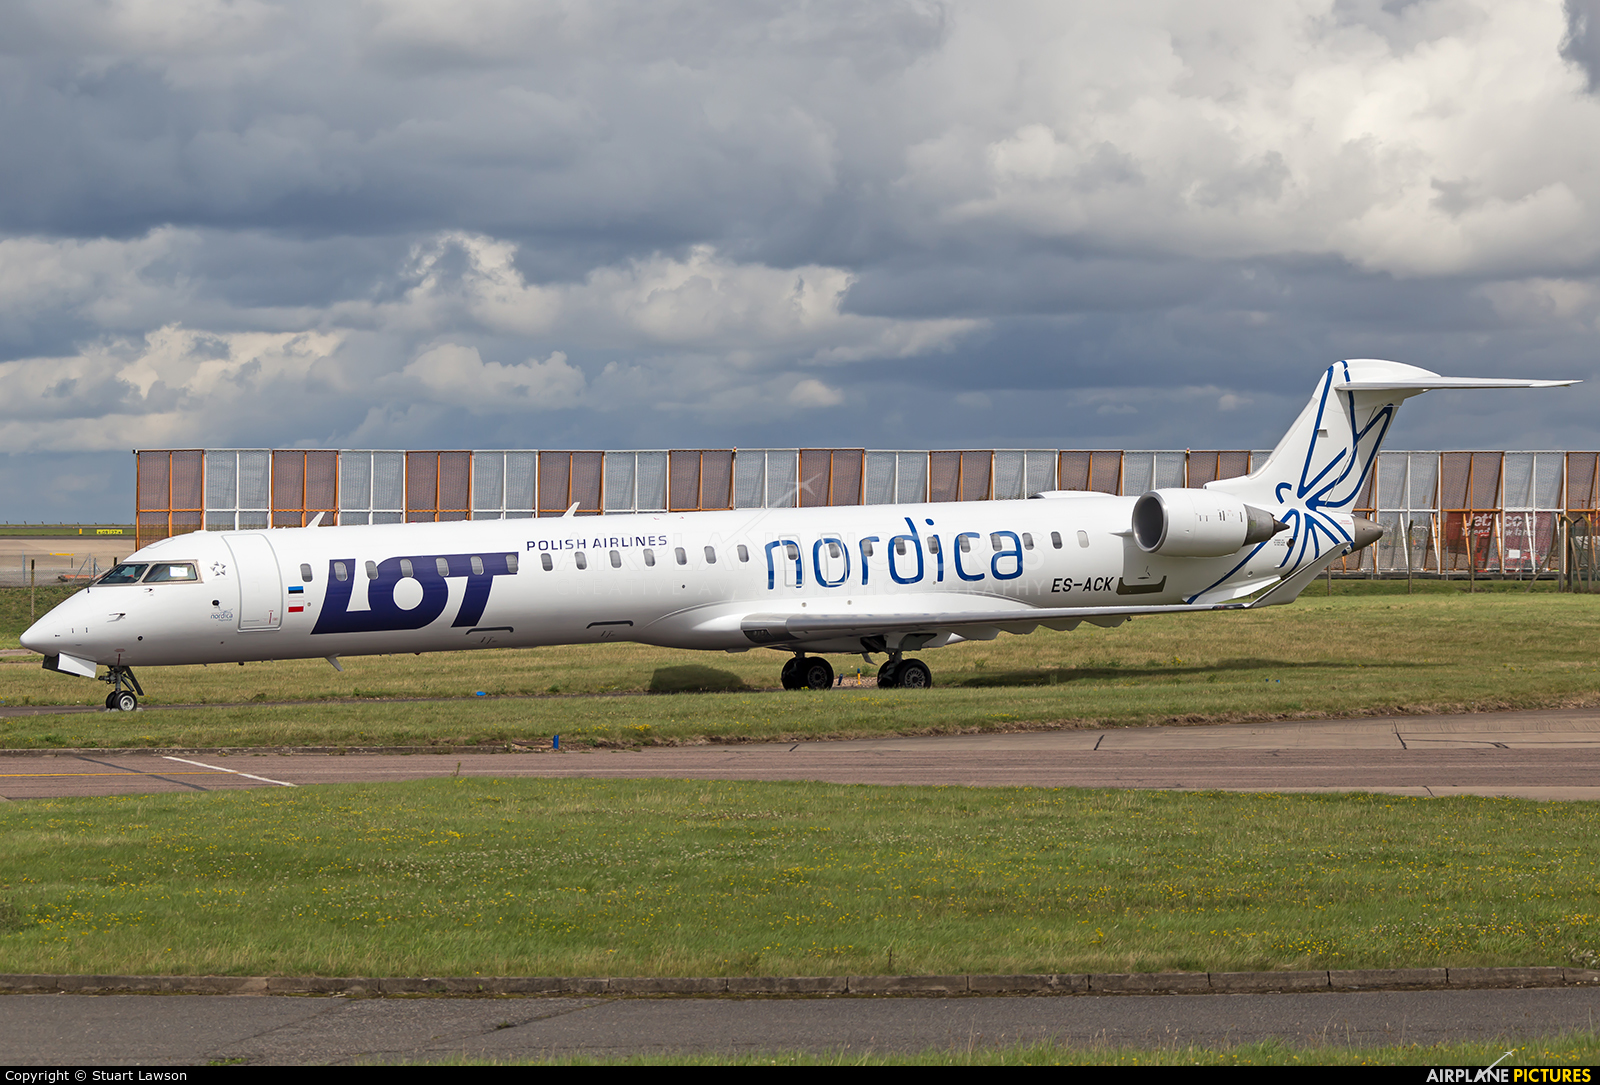 Nordica ES-ACK aircraft at East Midlands